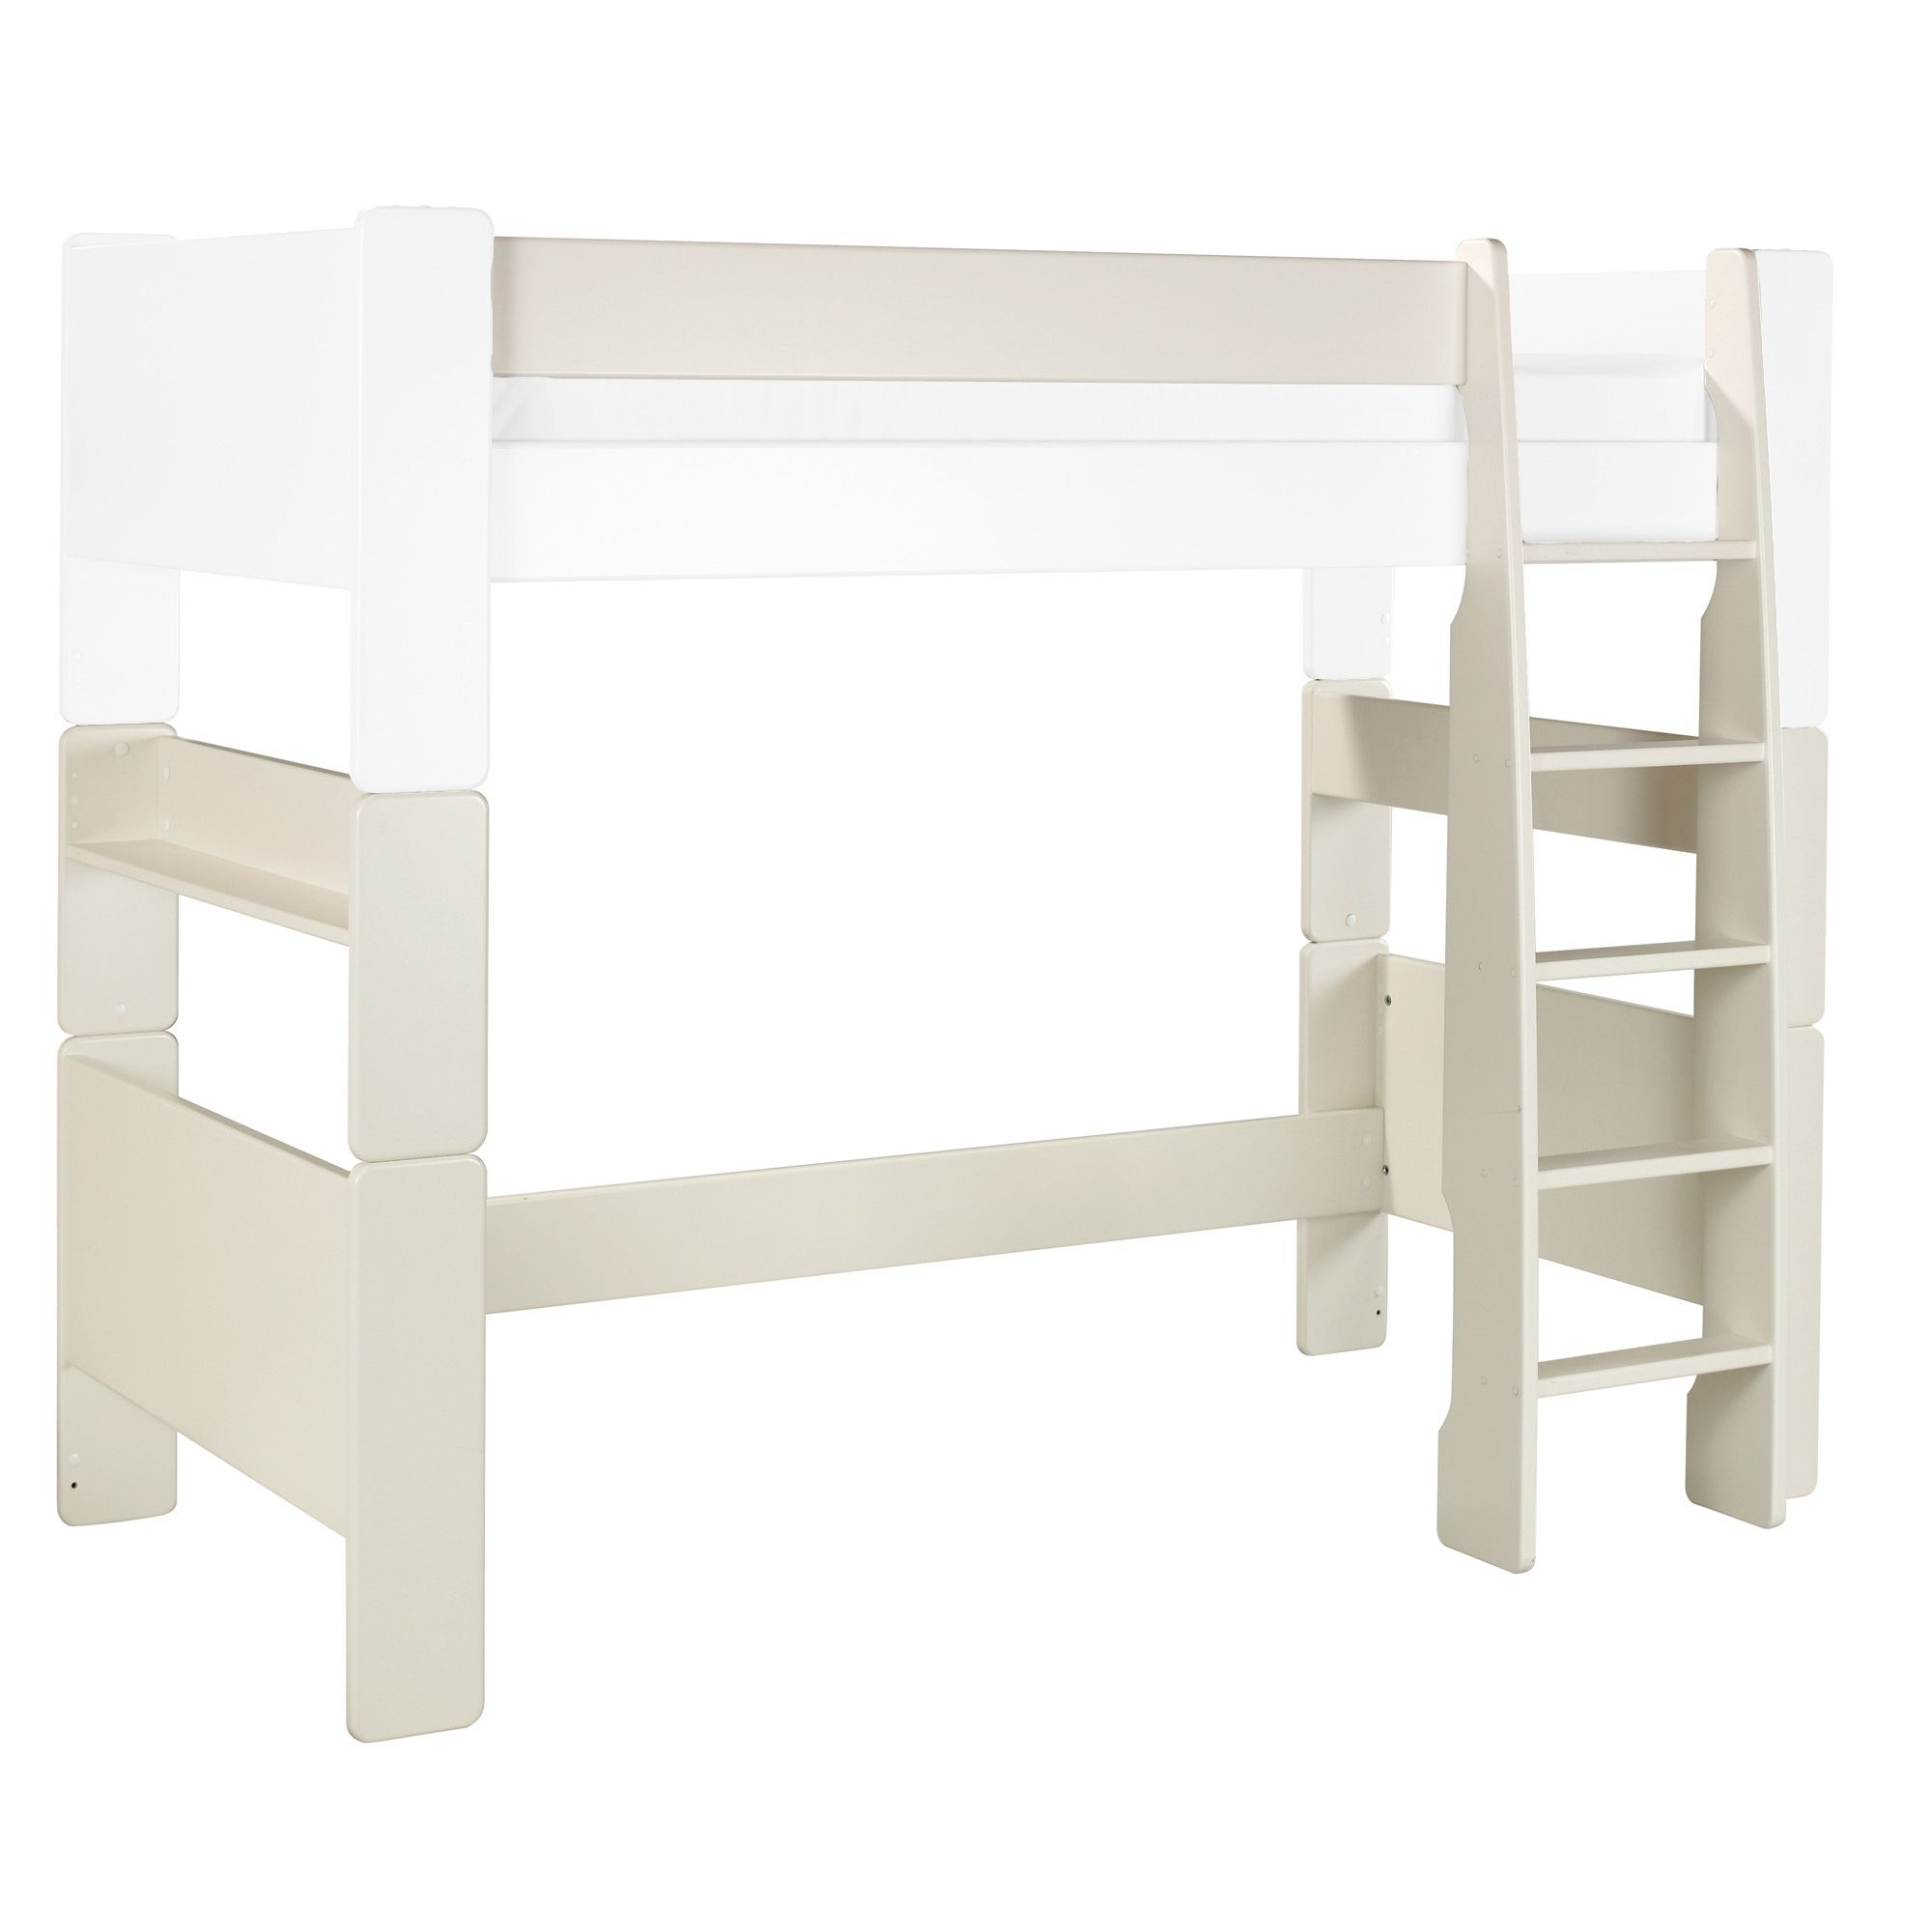 Wizard Single High Sleeper Bed Extension Kit   Departments ...